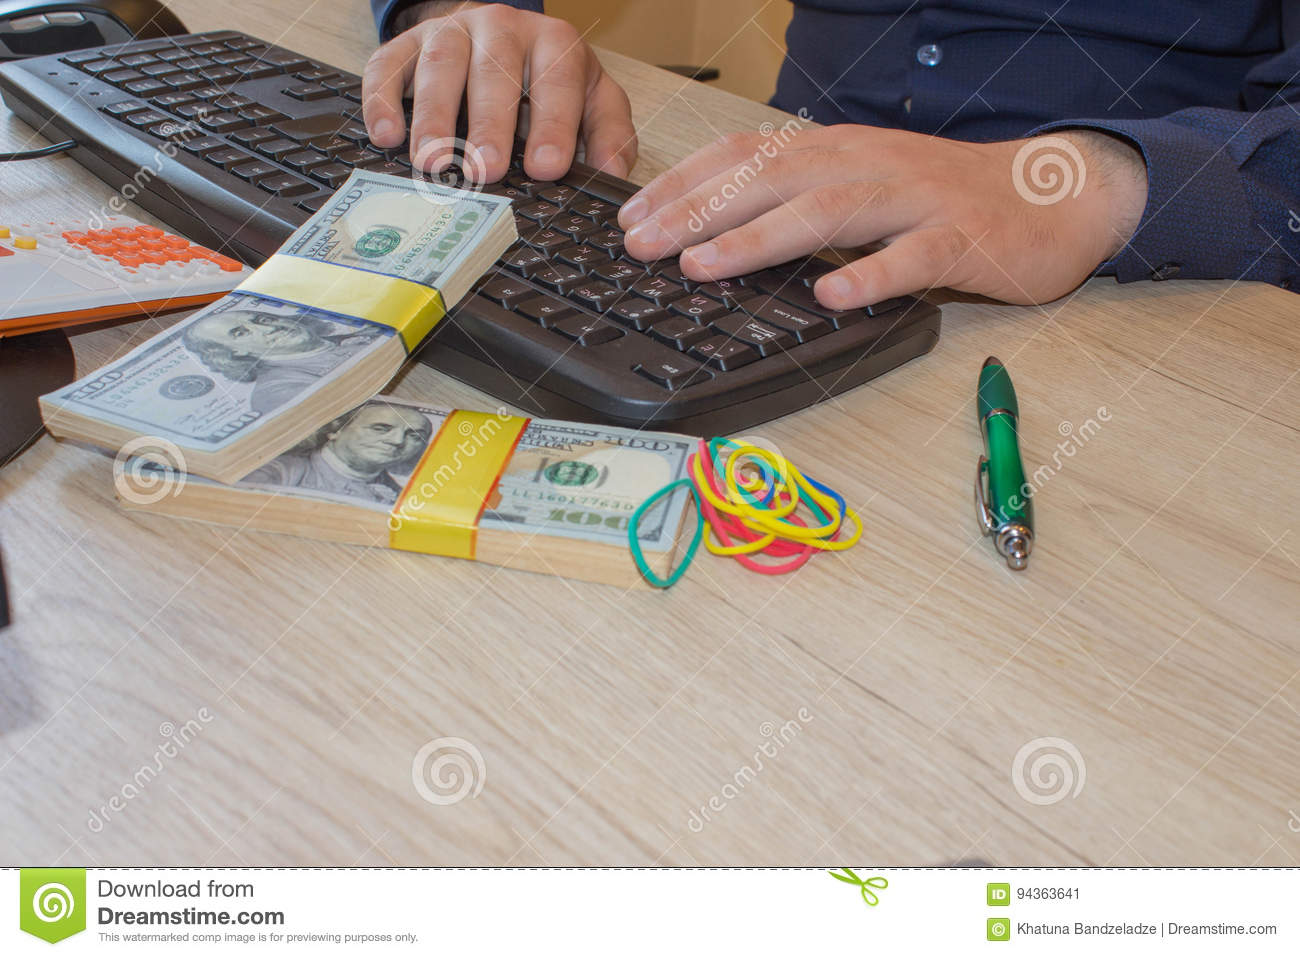 Financial concept. Make money on the Internet. Businessman working with laptop in office